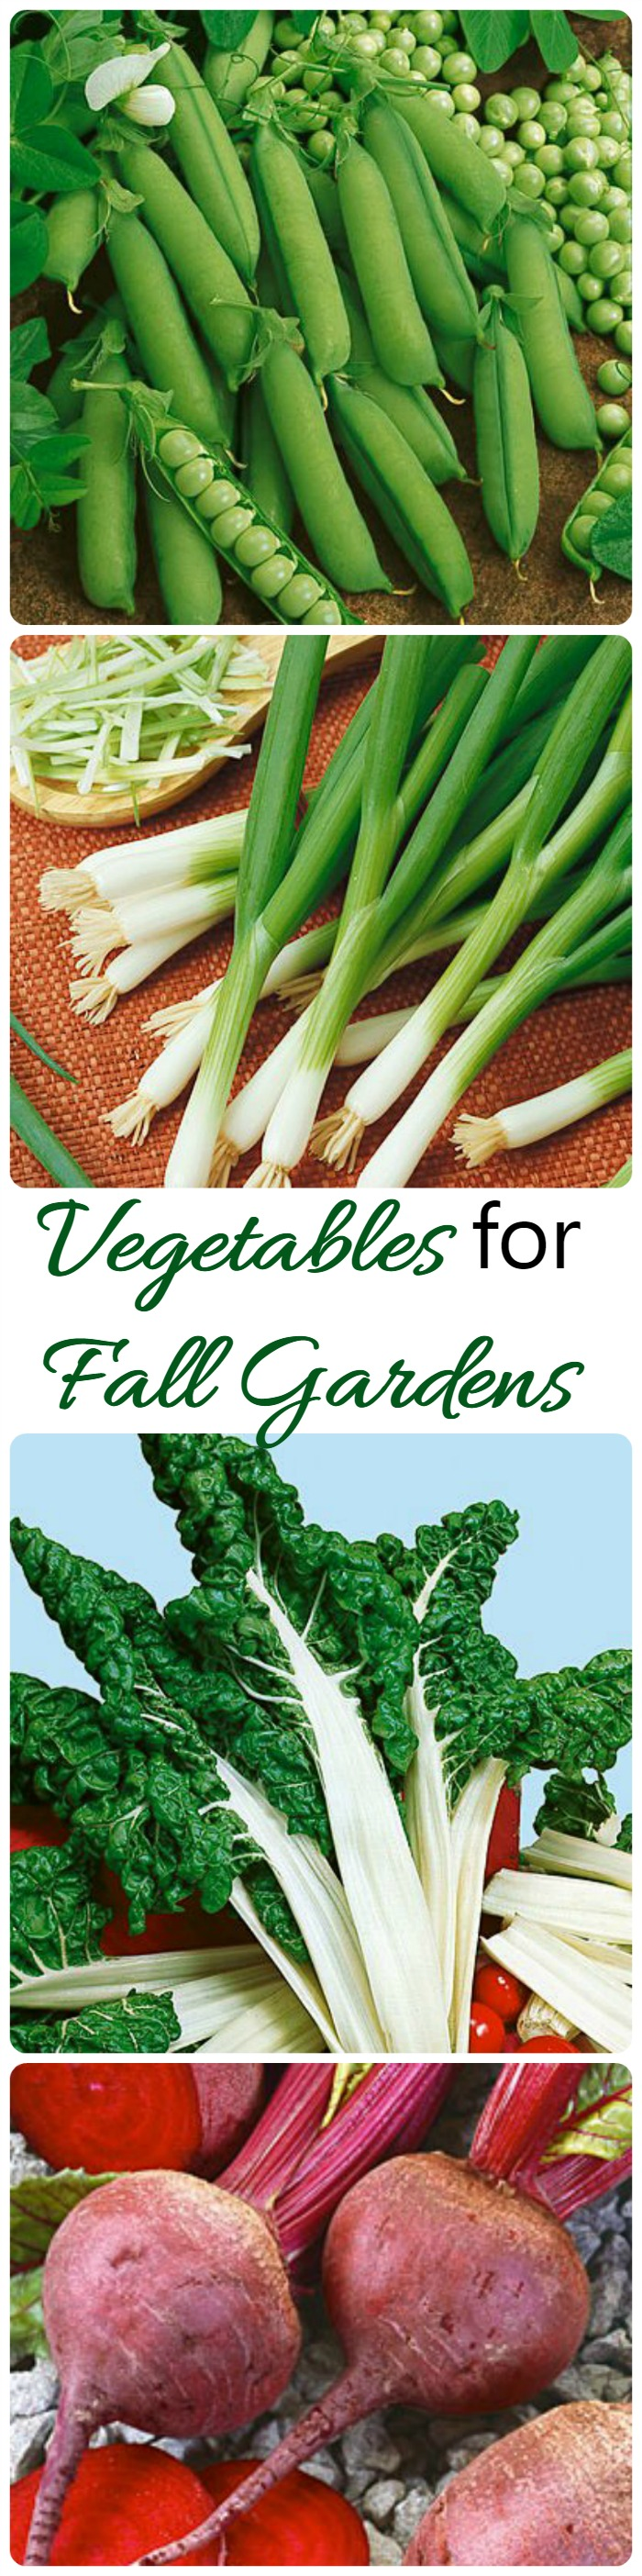 Summer is coming to an end but there are lots of vegetables that you can grow well in fall gardens